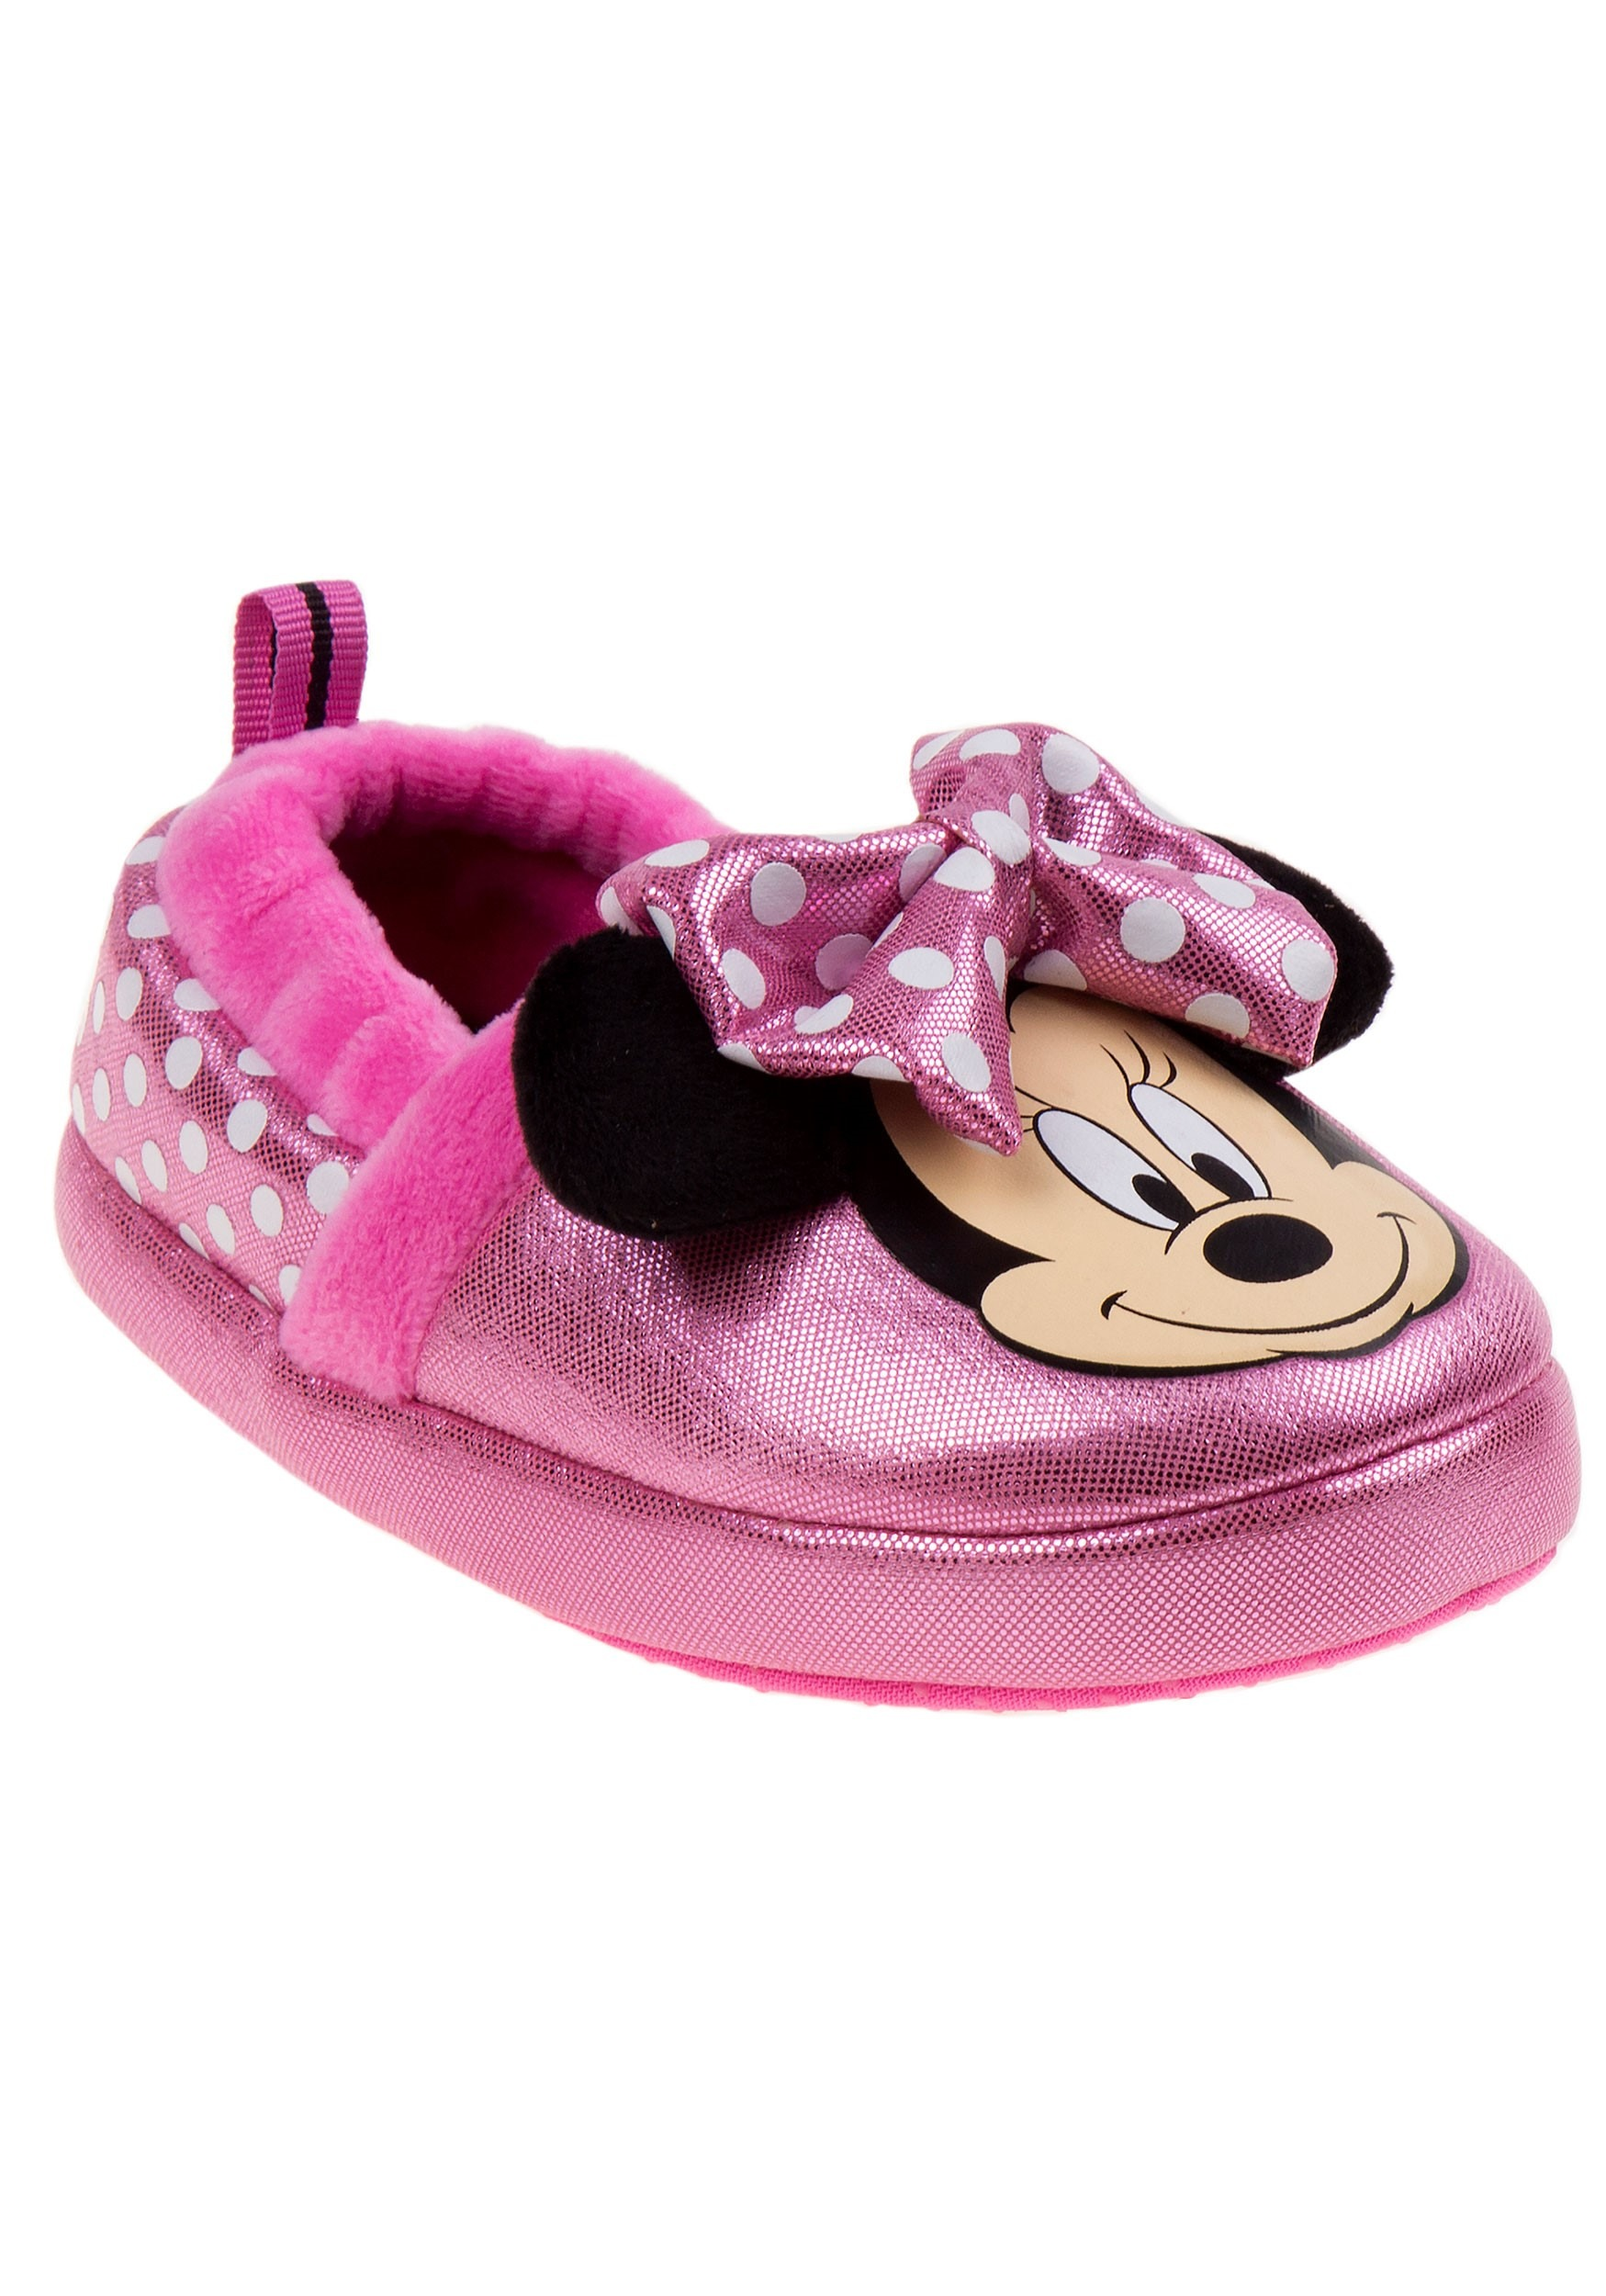 Disney Minnie Mouse Girls Pink Bow Slippers